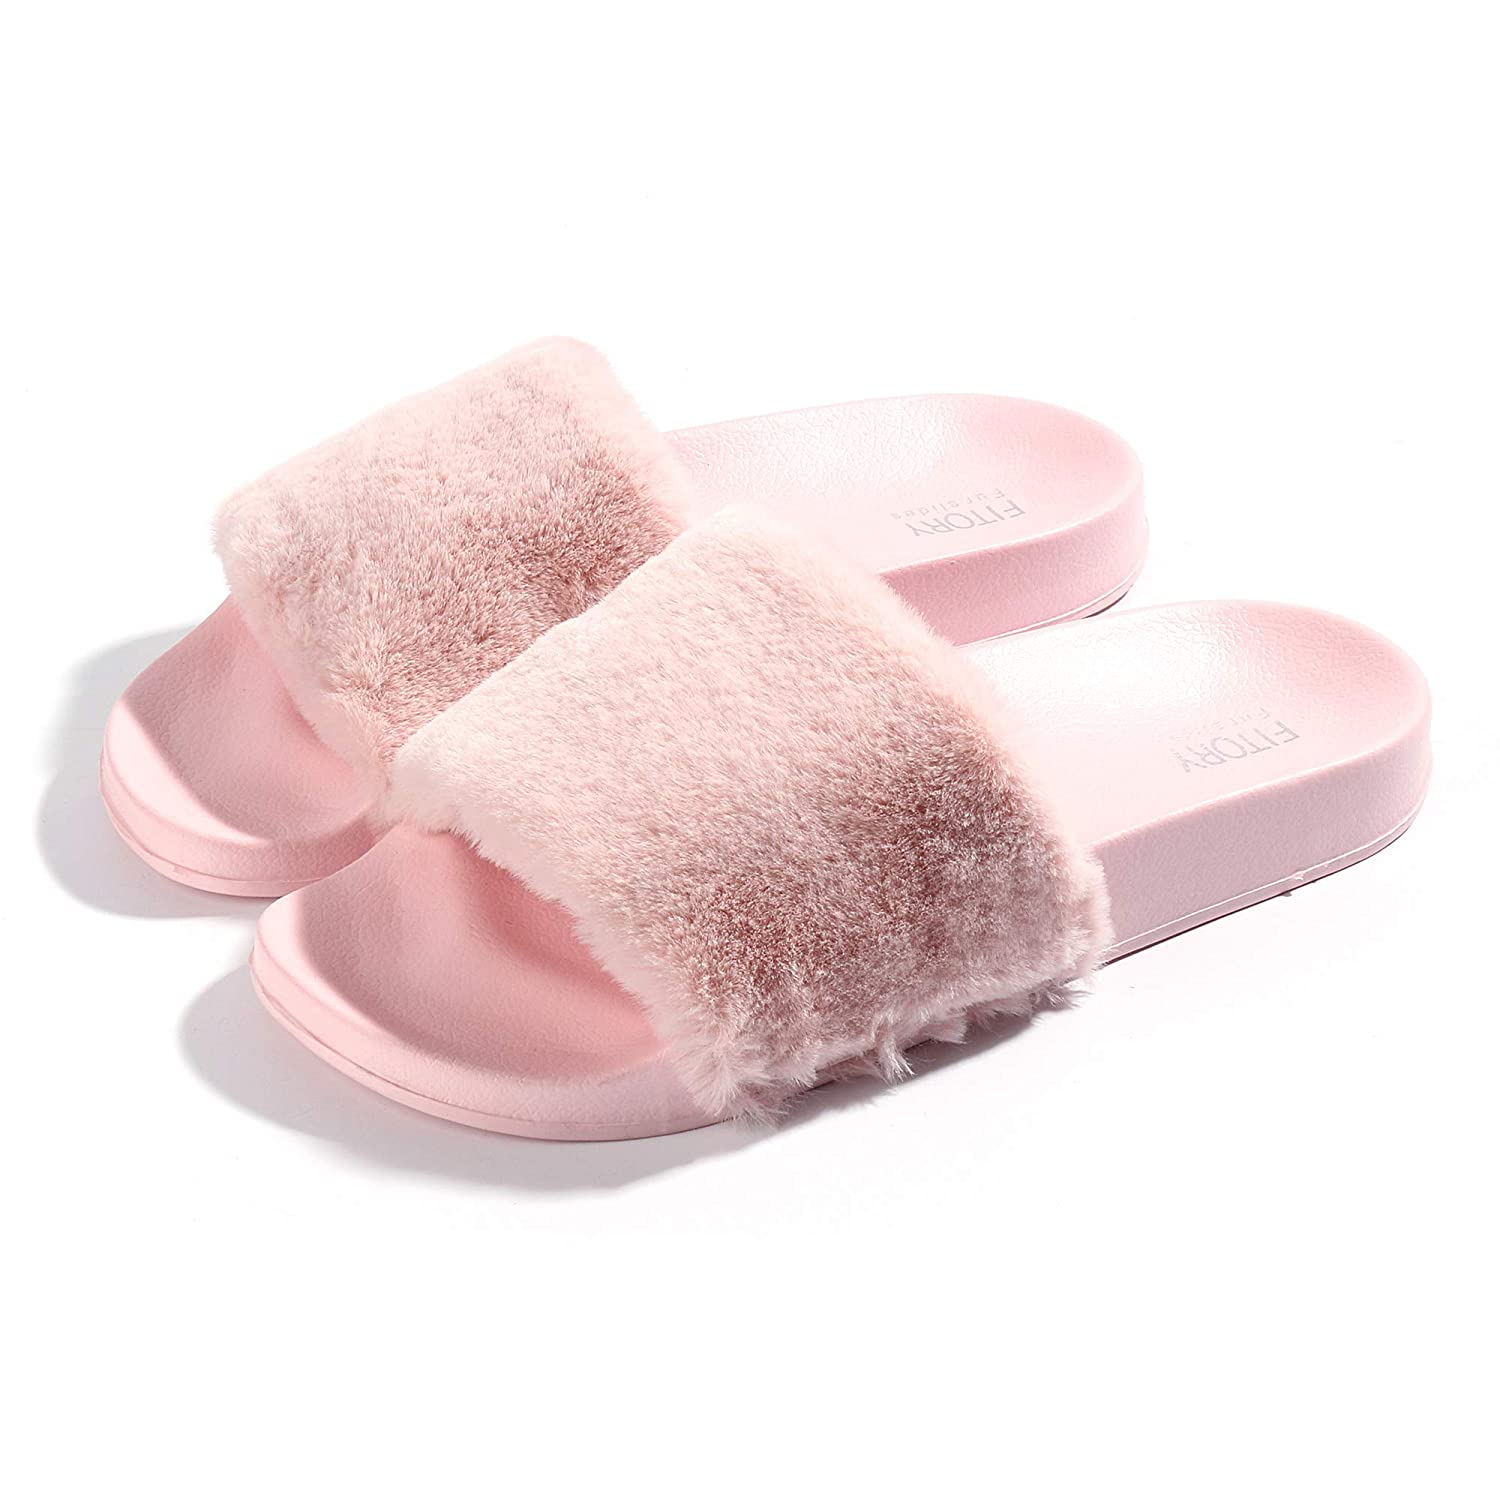 da36321dd FITORY Women Slides Slippers,Faux Fur Slide Slip On Flats Sandals Arch  Support Open Toe Soft Girls Indoor Outdoor Shoes: Amazon.ca: Shoes &  Handbags